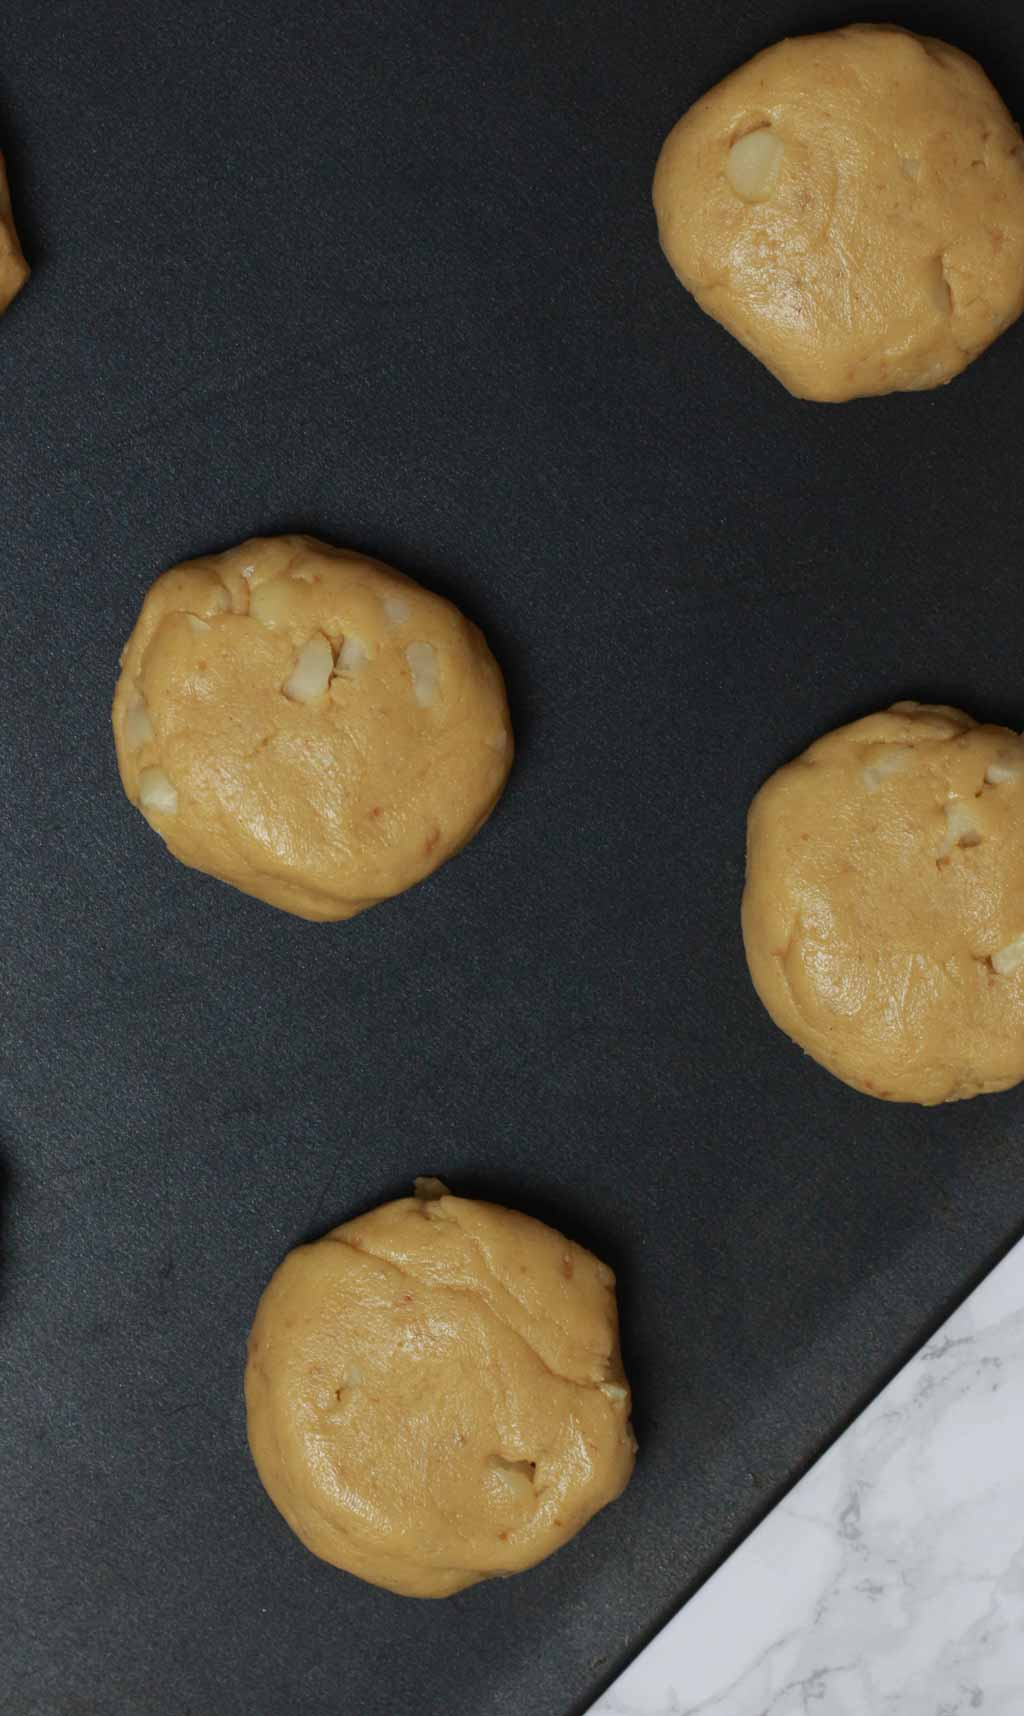 Discs Of Cookie Dough On Baking Tray